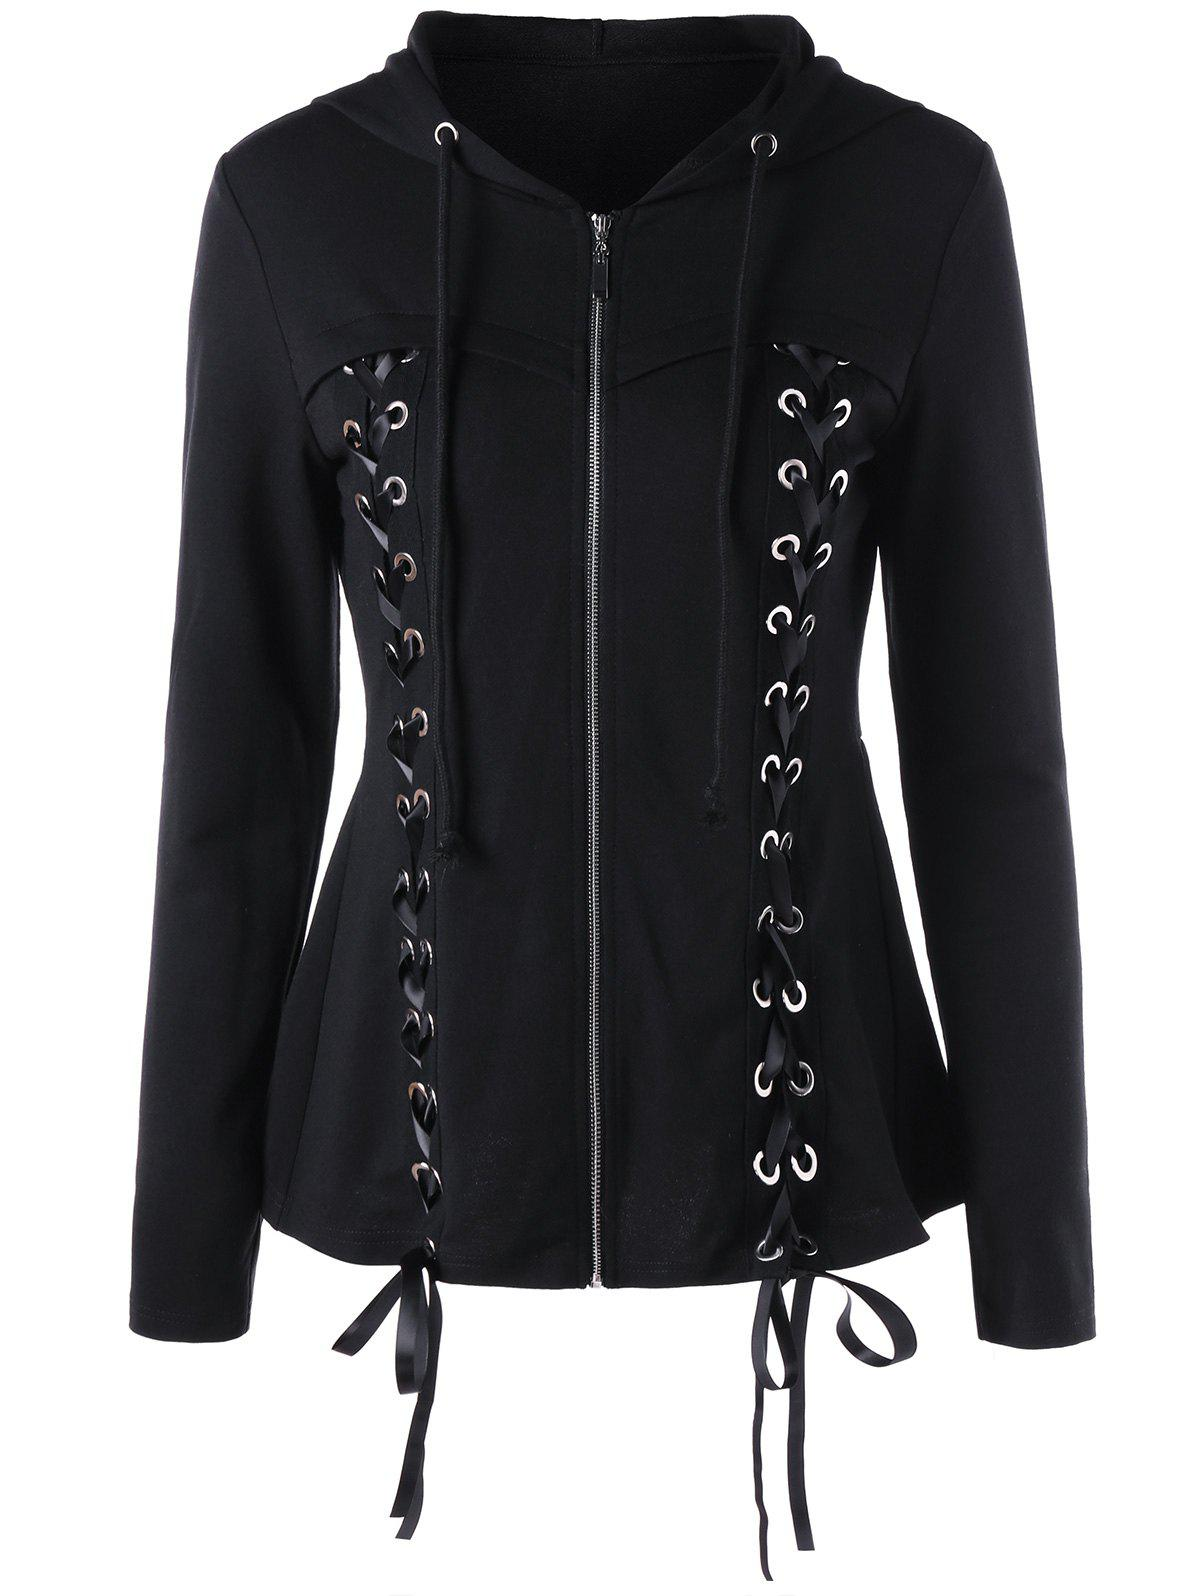 Drawstring Neck Lace Up HoodieWOMEN<br><br>Size: M; Color: BLACK; Material: Polyester; Shirt Length: Regular; Sleeve Length: Full; Style: Novelty; Pattern Style: Solid; Season: Fall,Spring; Weight: 0.4200kg; Package Contents: 1 x Hoodie;